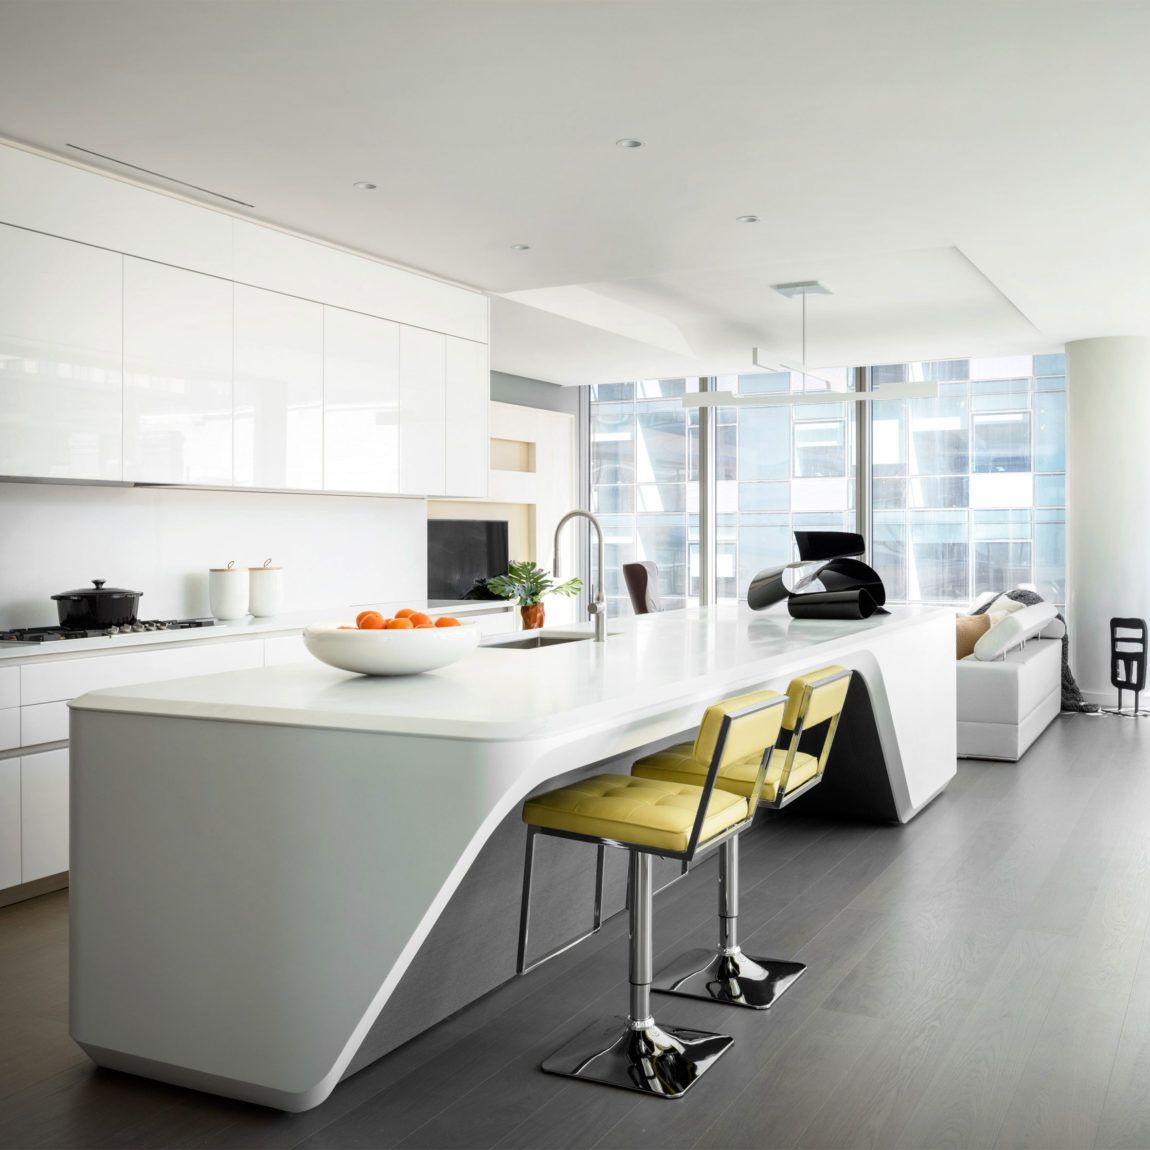 New York Kitchen Design: Stylish Apartment In New York, Exquisitely Decorated By